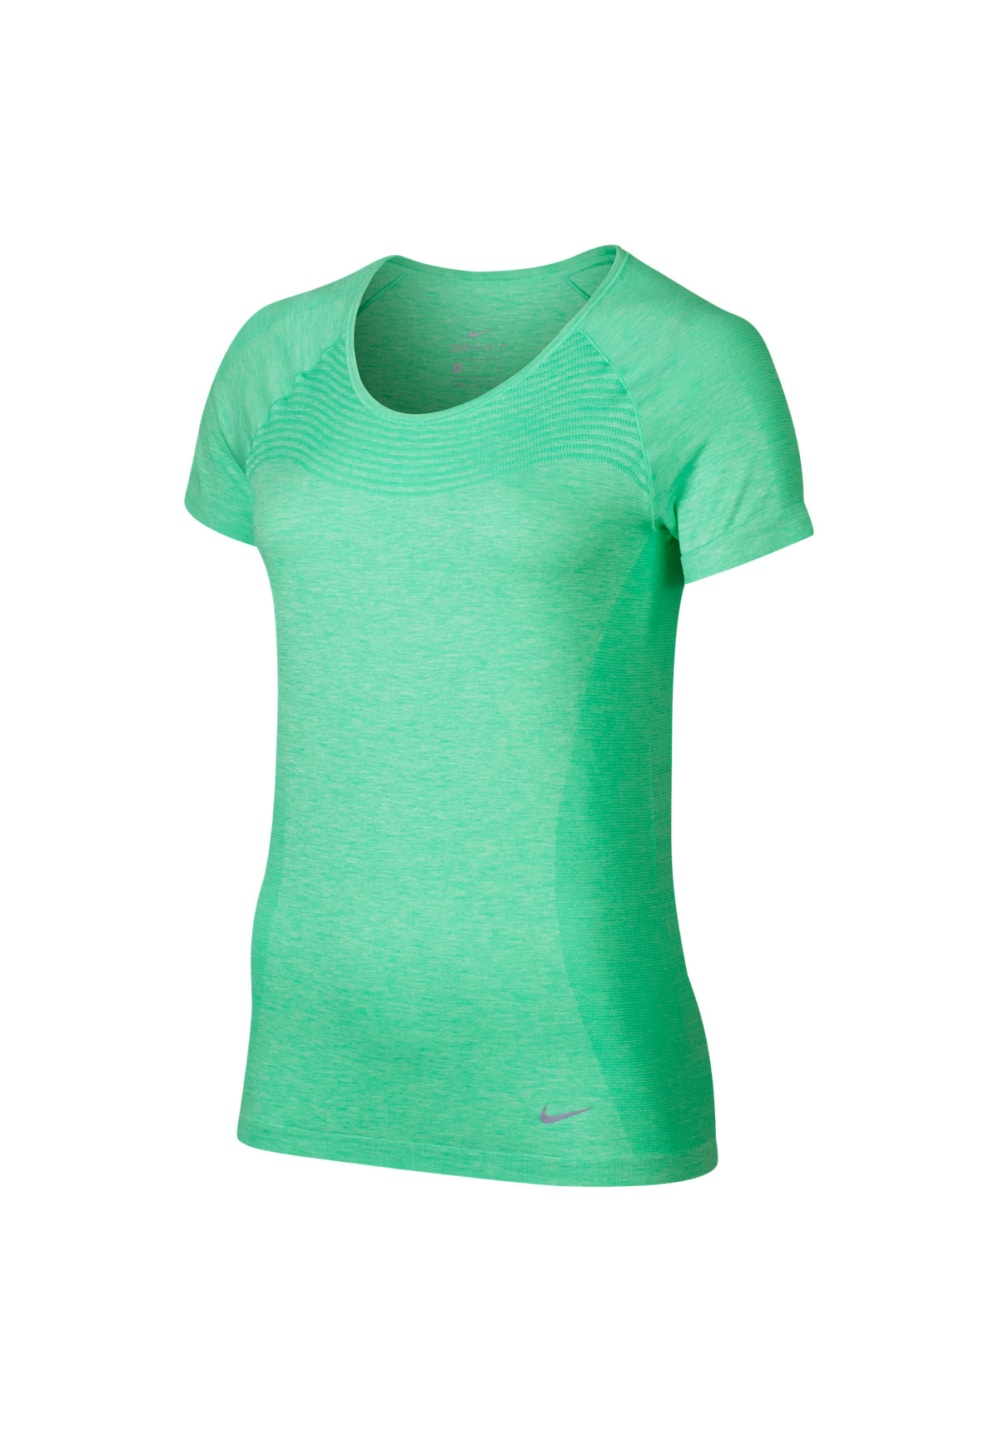 Nike Dri-FIT Knit Running Top Femmes Maillot course